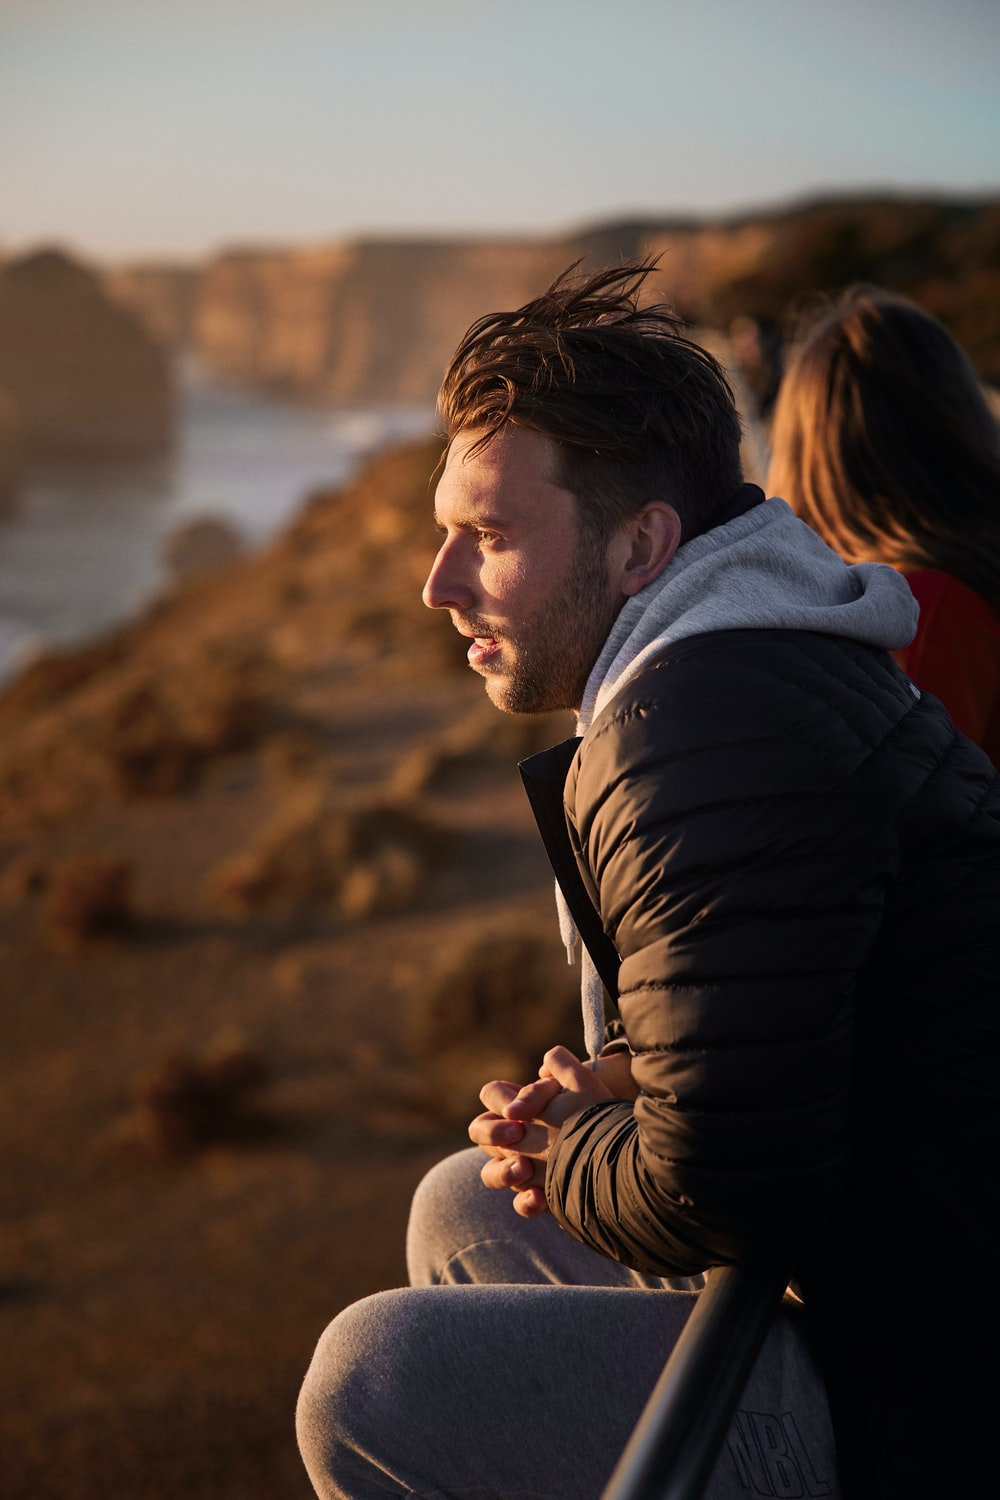 man in black jacket holding woman in red shirt near body of water during daytime